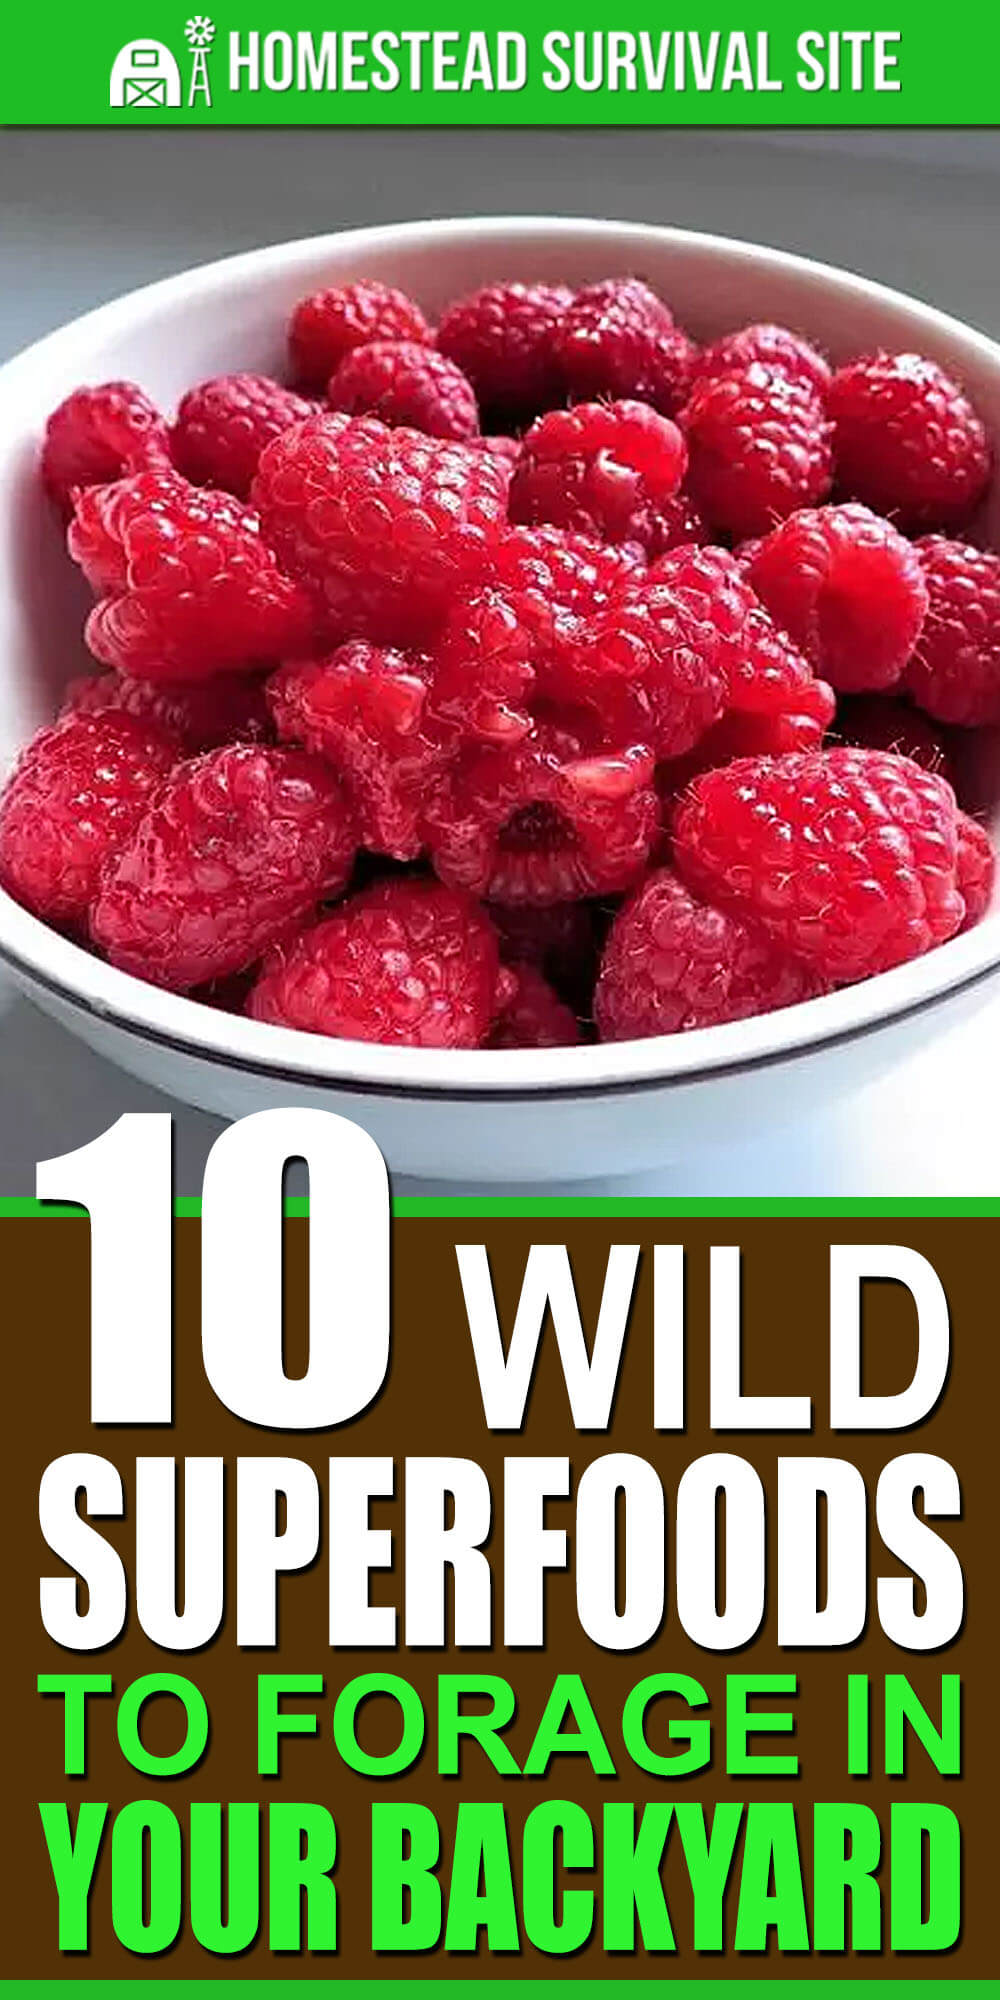 10 Wild Superfoods To Forage In Your Backyard